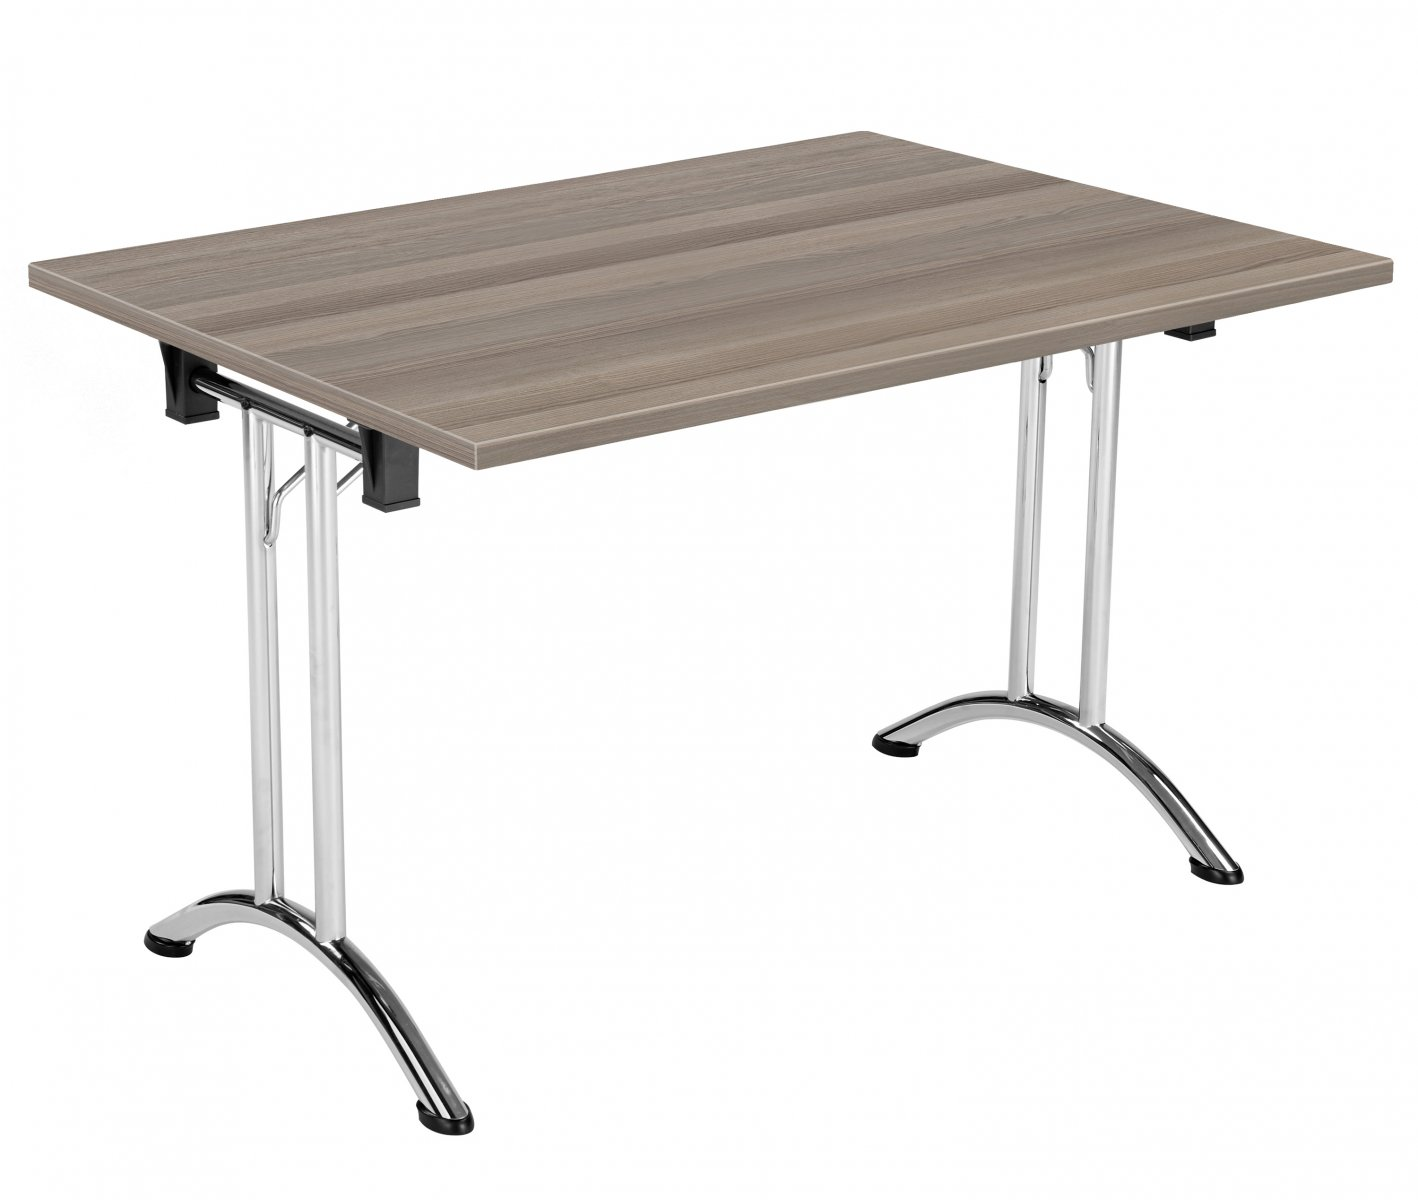 Union Rectangular 120 x 80 Folding Meeting Table - Grey Oak with Chrome Frame